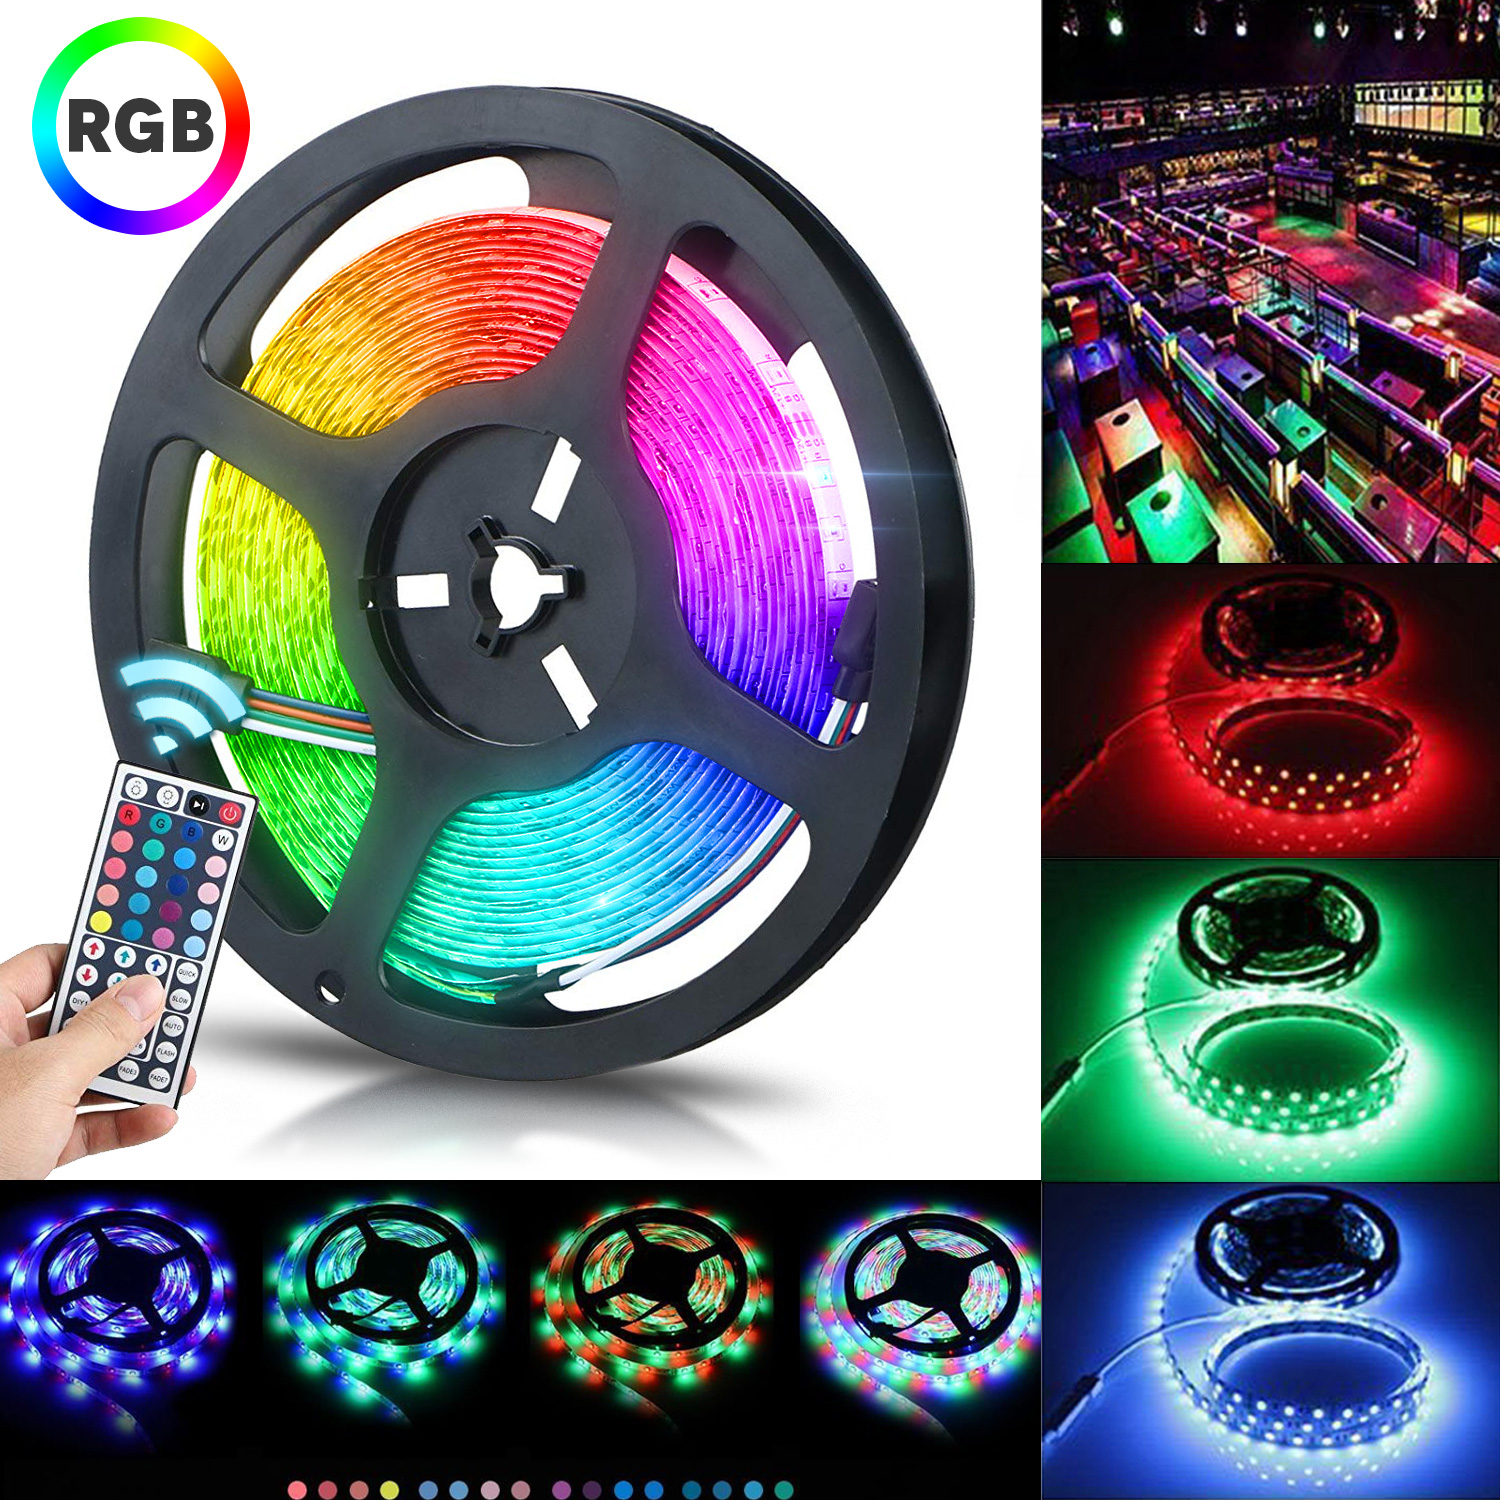 Led Light Strips Rgb Tsv 16 4ft Led Flexible Strip Lights 300 Units Smd 5050 Leds 12v Dc Waterproof Light Strips Rgb Led Light Strip Kit With 44key Remote Controller